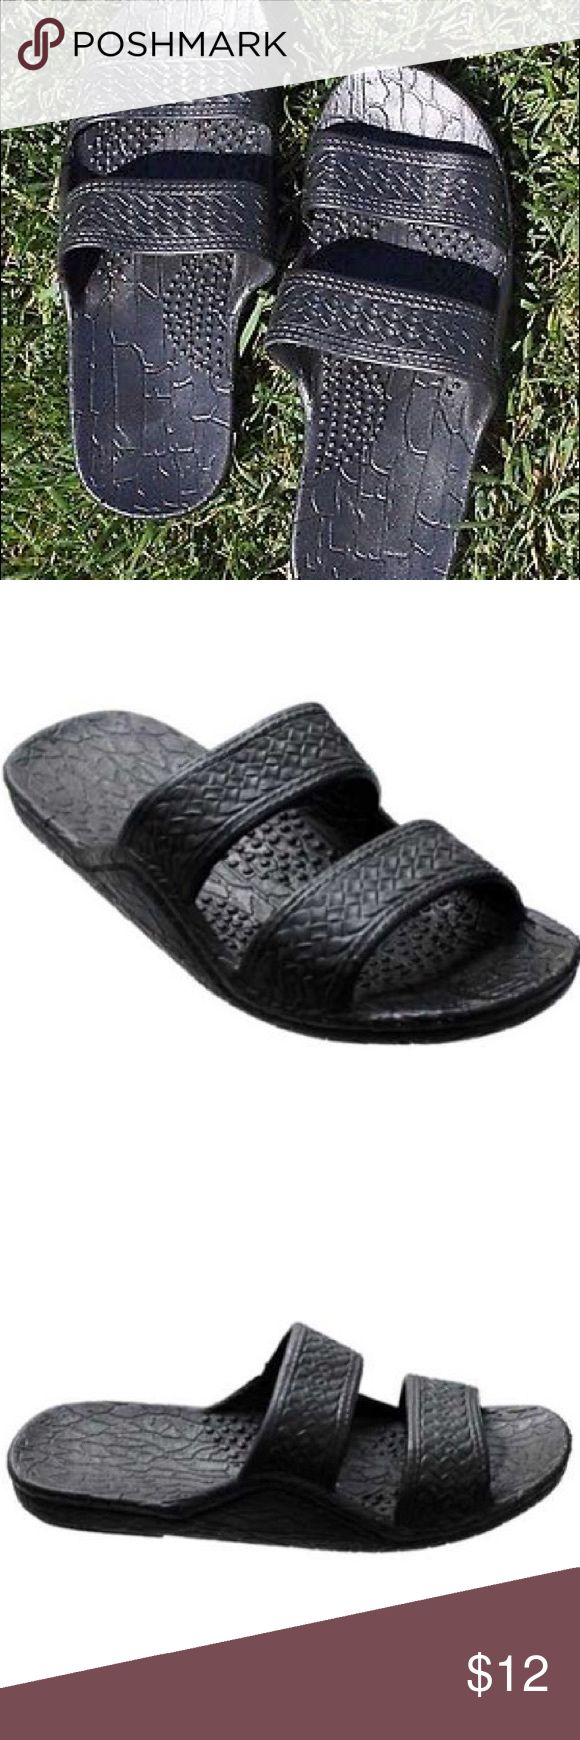 Unisex Hawaiian Two Strap Surf Sandal Classic rubber Jesus slide sandal or jandals featuring a two strap upper and infamous comfortable material. This unisex style is sized at the ladies scale. Women choose regular size, Men choose 1 size above your normal size. Worn Once                                                        - THE DETAILS:                                                         -  Waterproof Shoes Sandals